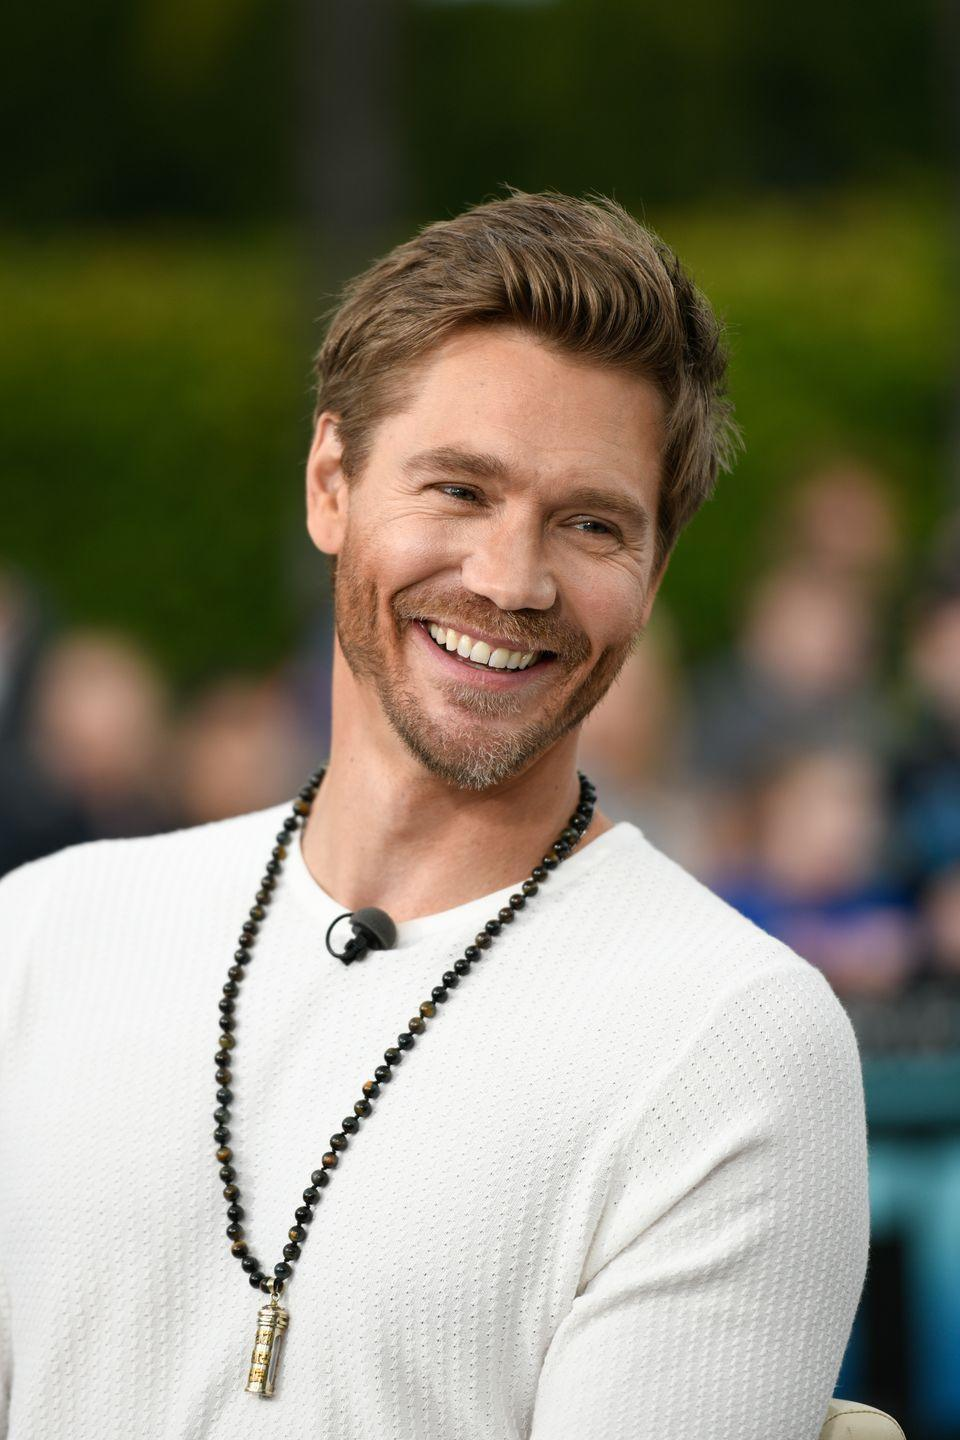 <p>Murray is still acting! He's been in numerous TV shows like Marvel's <em>Agent Carter, </em>FOX's <em>Star</em>, and, most recently, the CW's <em>Riverdale</em>. </p>